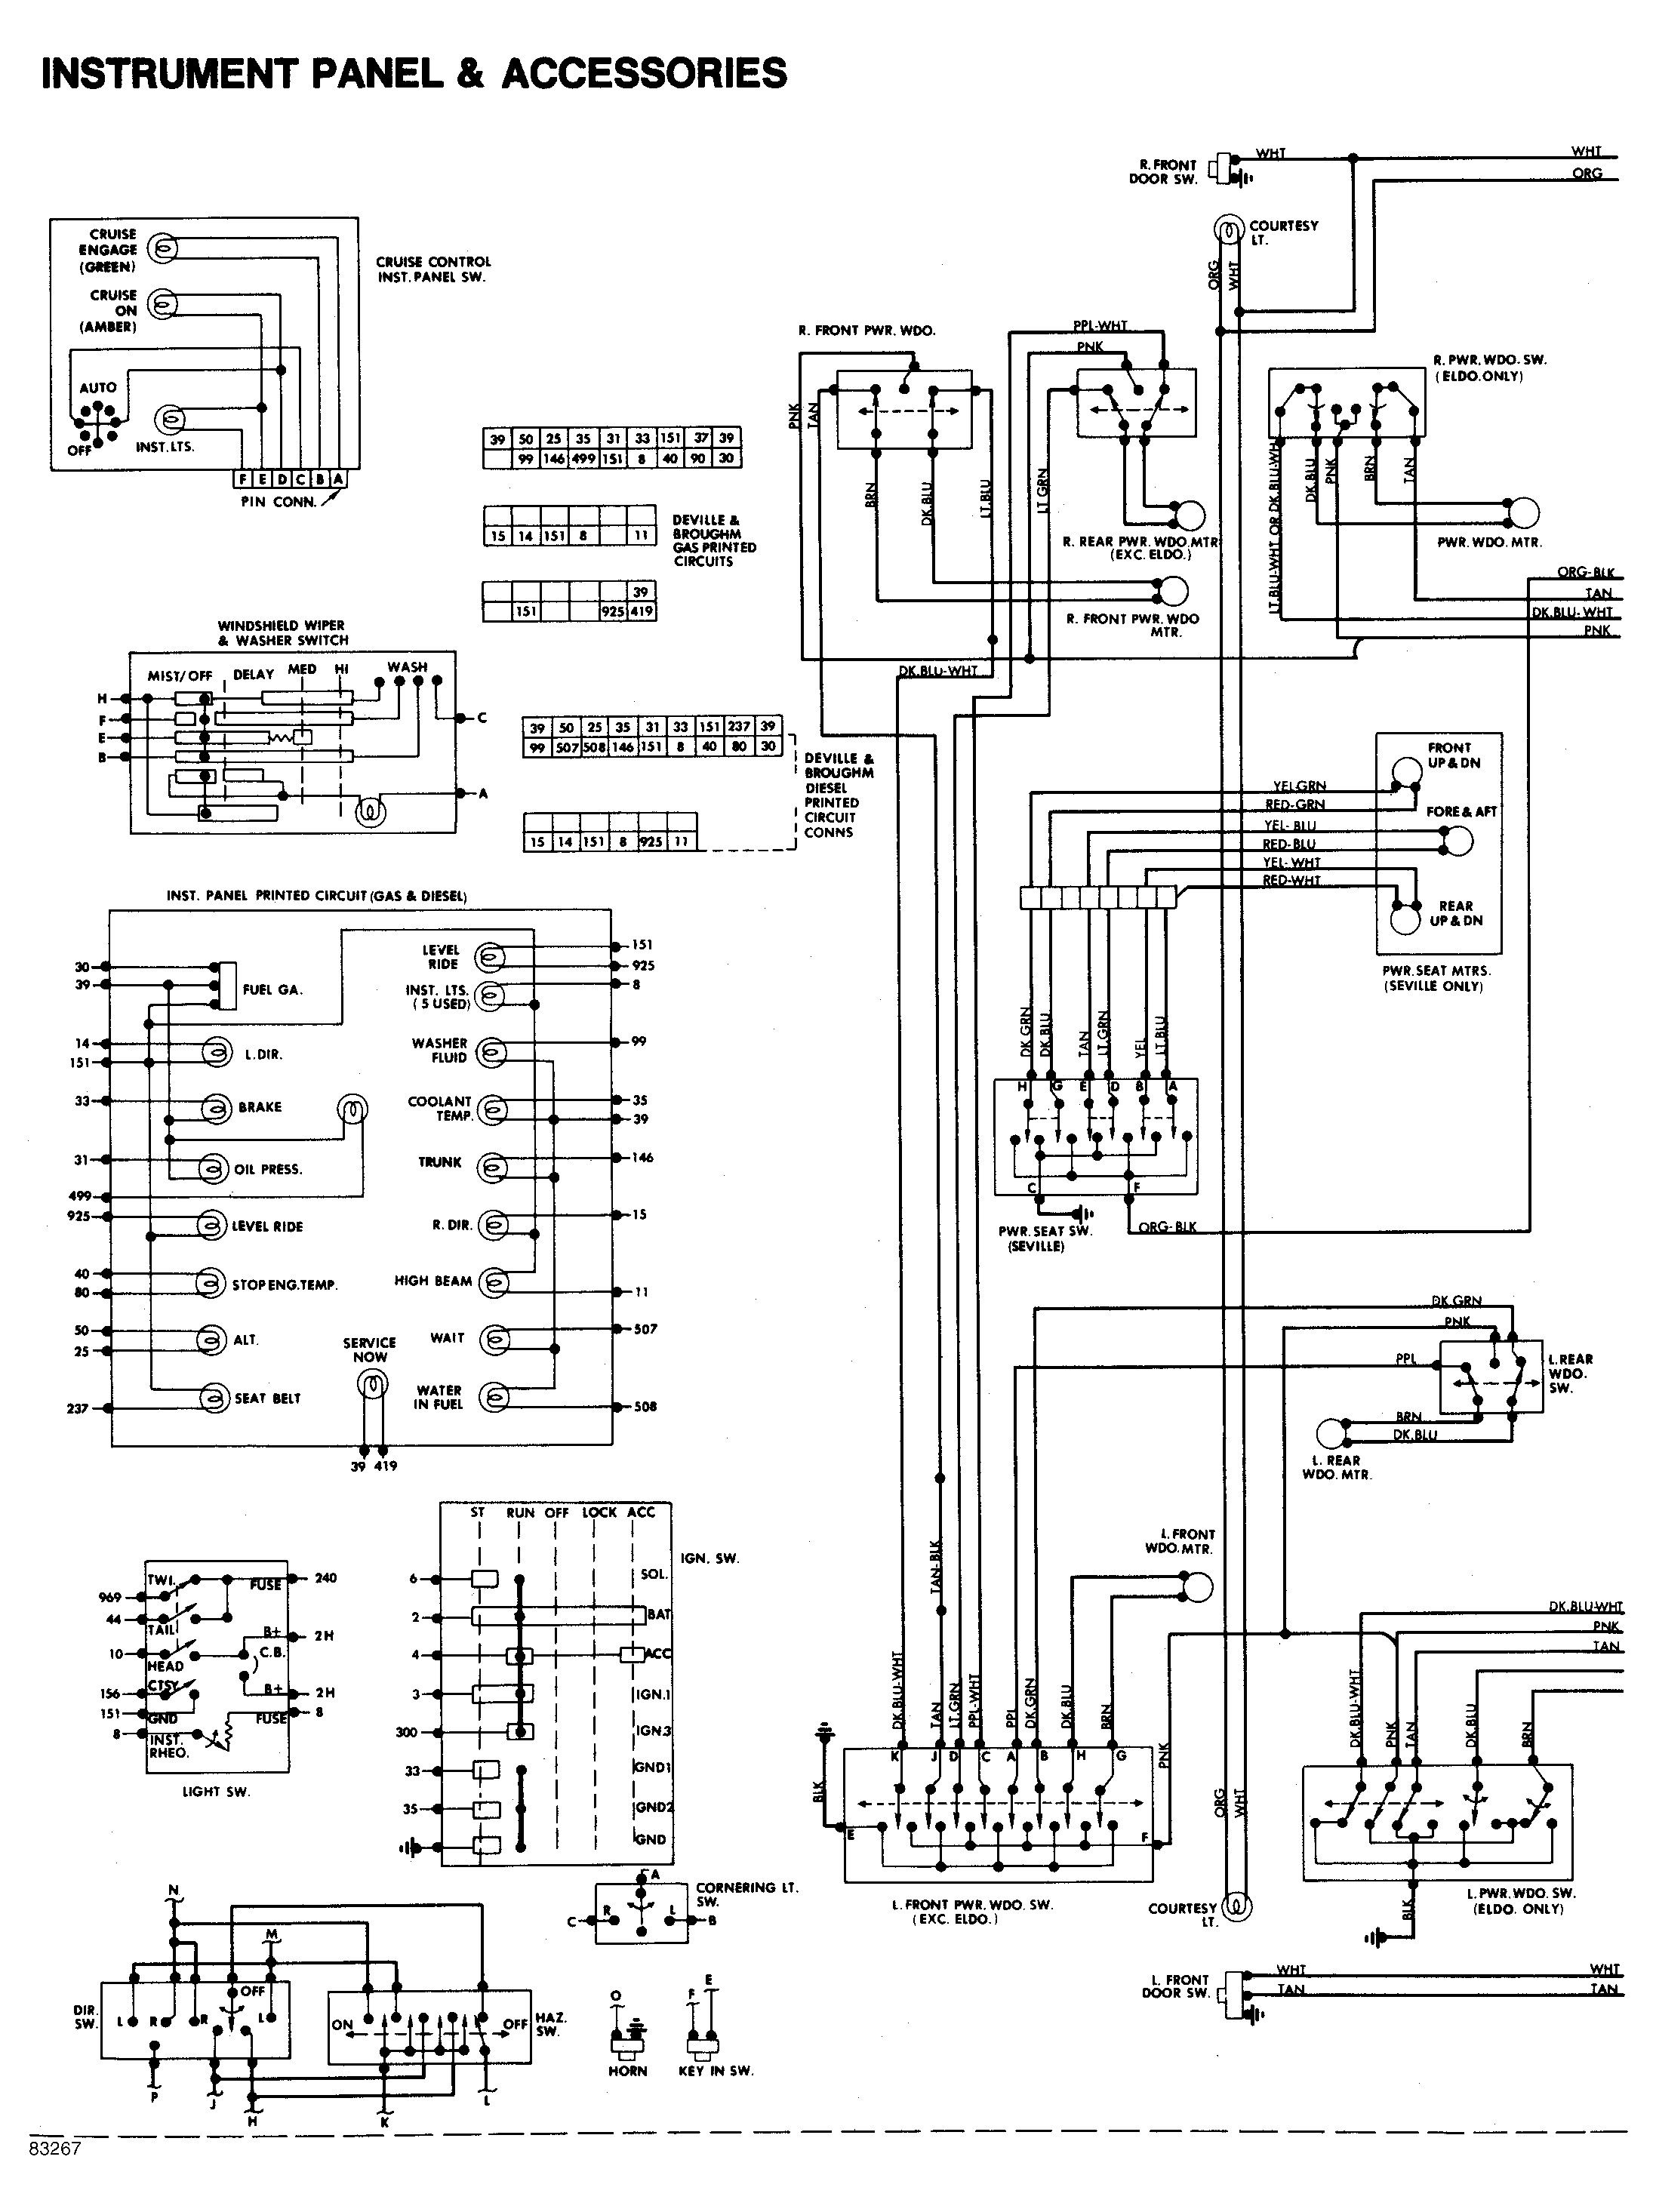 2000 honda accord radio wiring diagram fresh daewoo leganza audio wiring diagram wiring diagrams international scout [ 2194 x 2931 Pixel ]